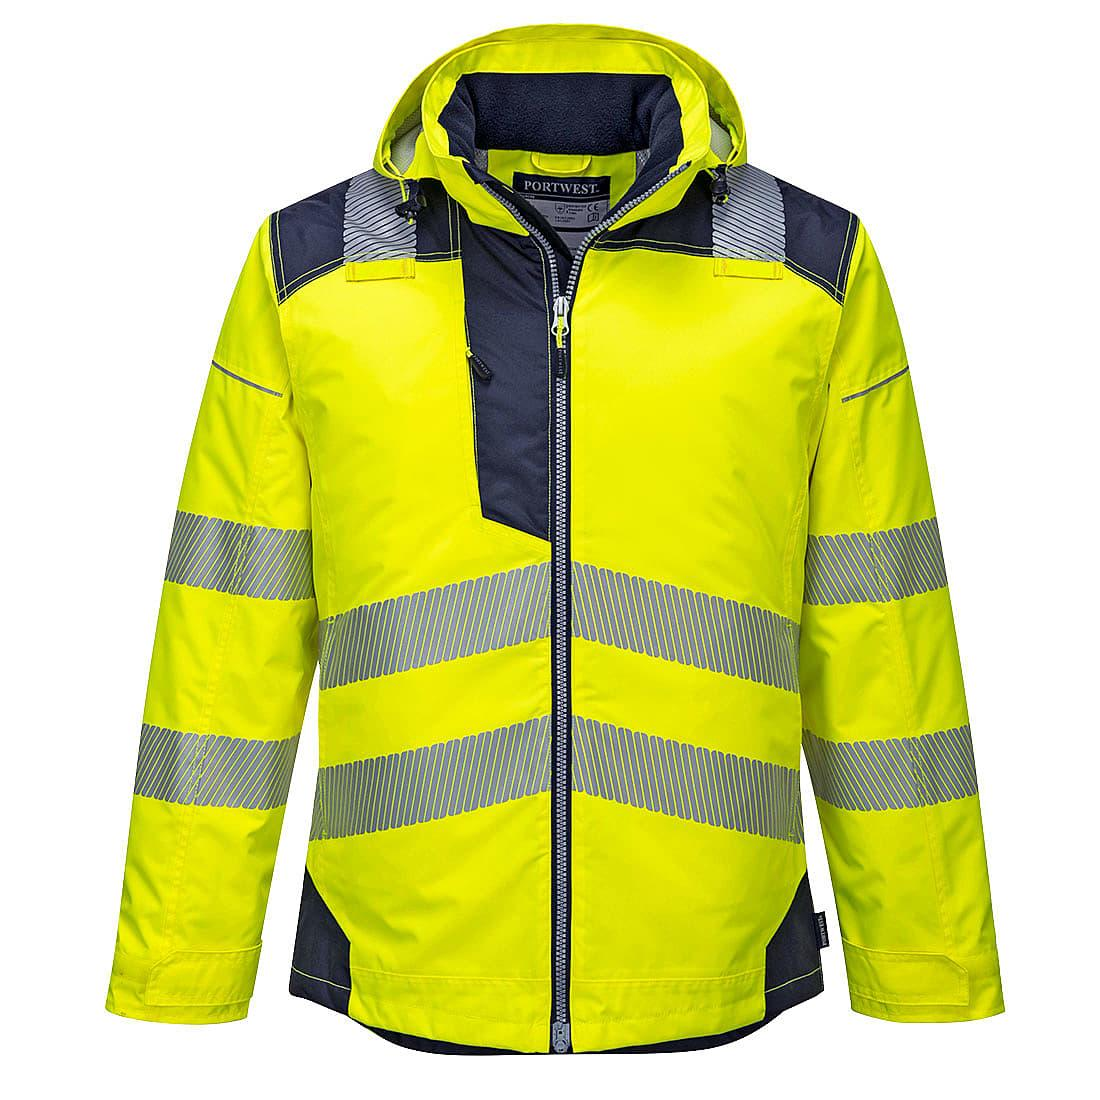 Portwest PW3 Hi-Viz Winter Jacket in Yellow / Navy (Product Code: T400)